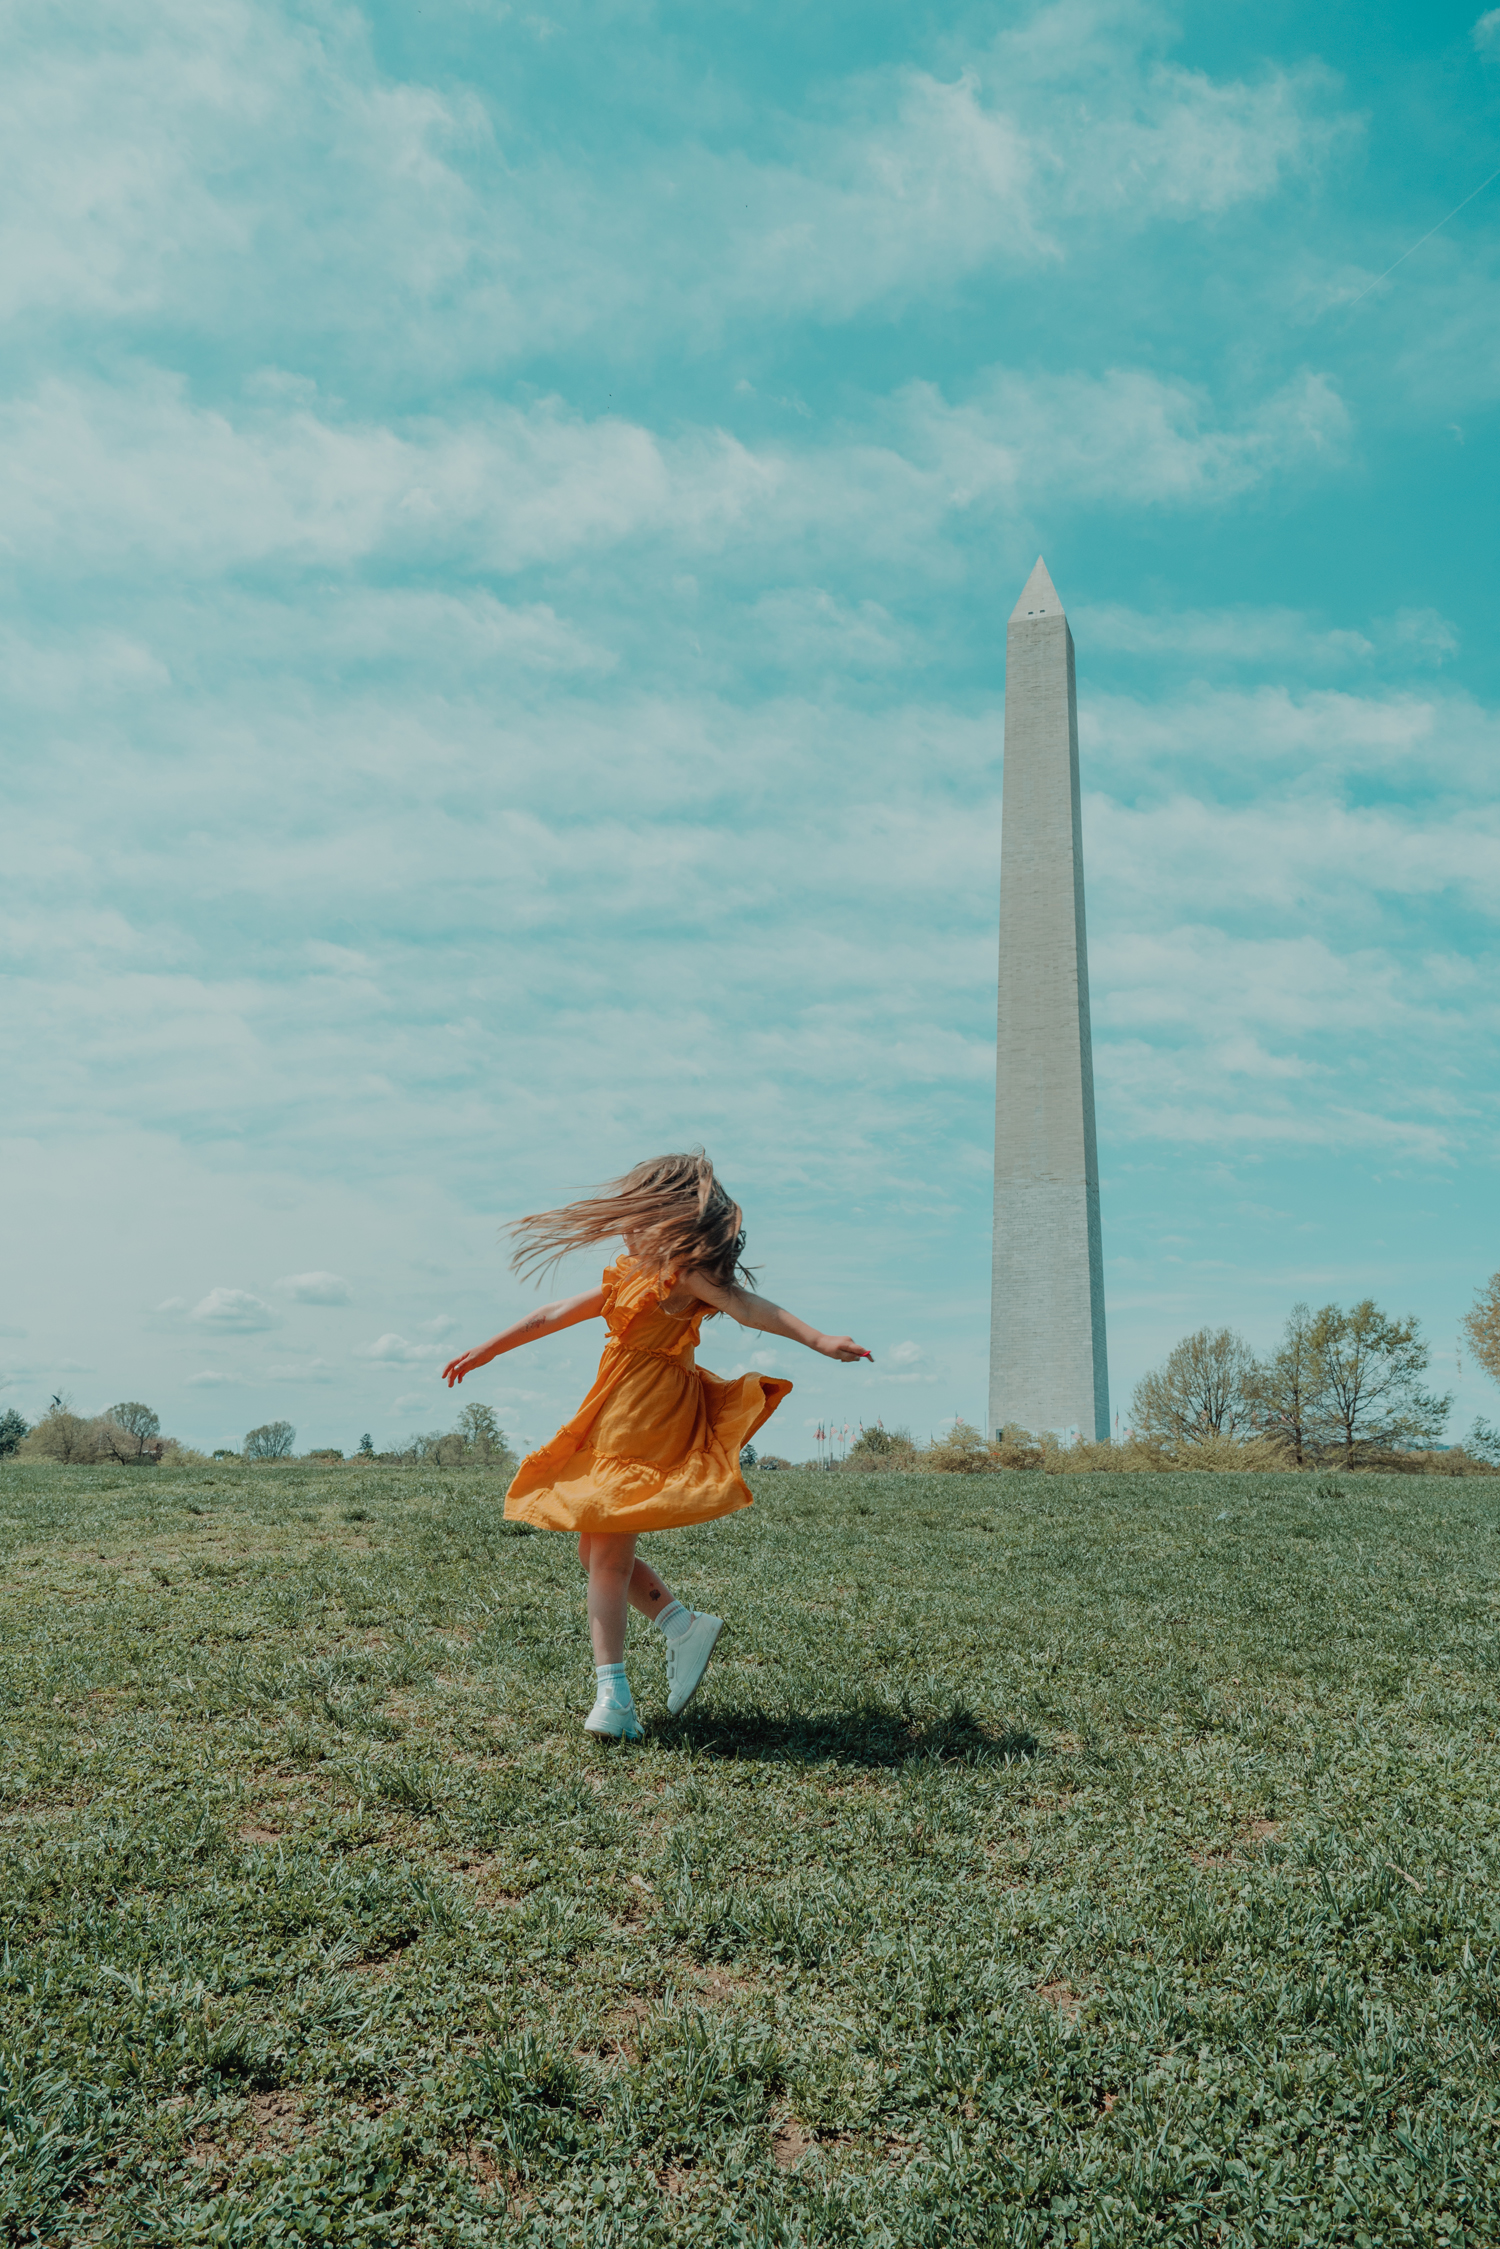 tips-for-traveling-with-little-kids, traveling with kids, family travel, best family travel, family travel blog, family travel blogger, washington dc, washington monument